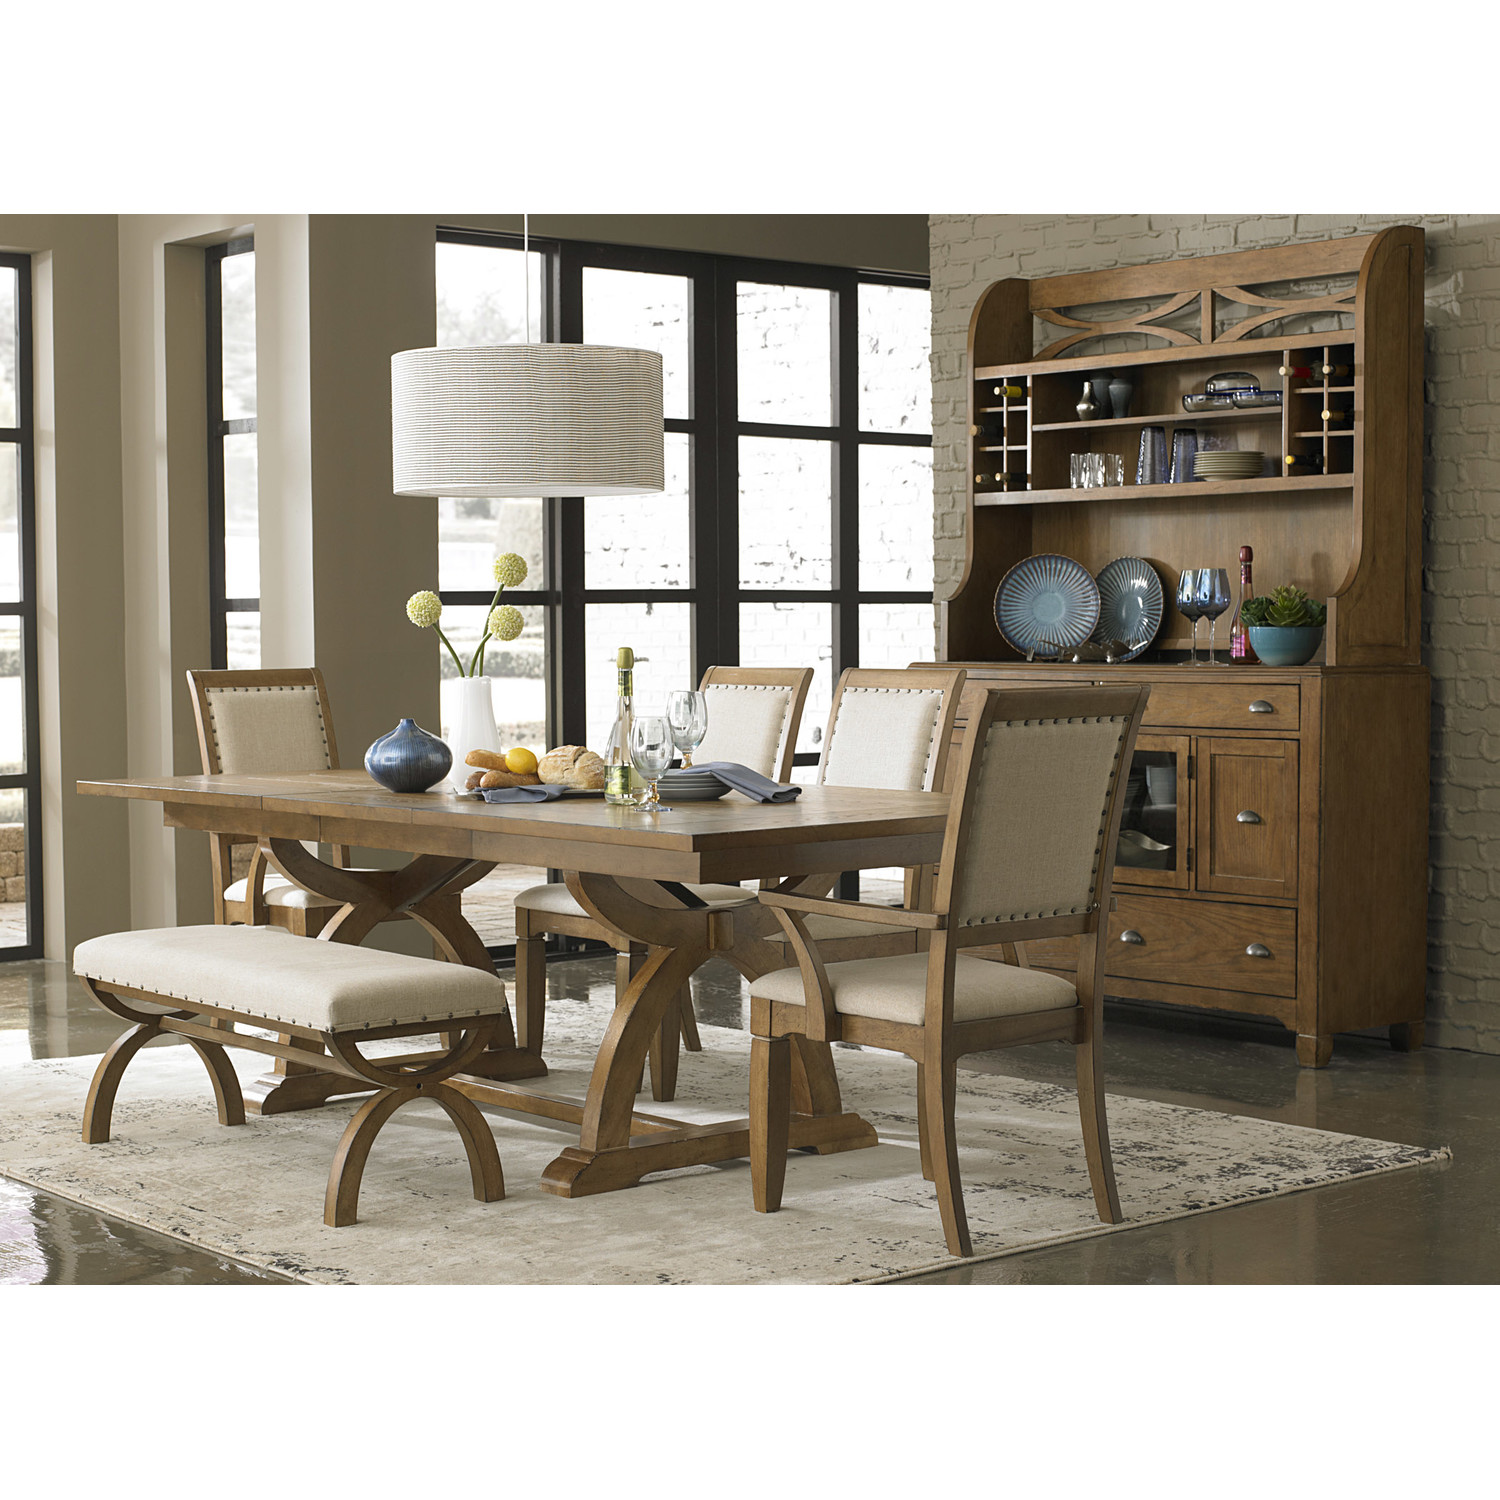 Dining Room Furniture Bench: Awesome Dinette Sets With Bench